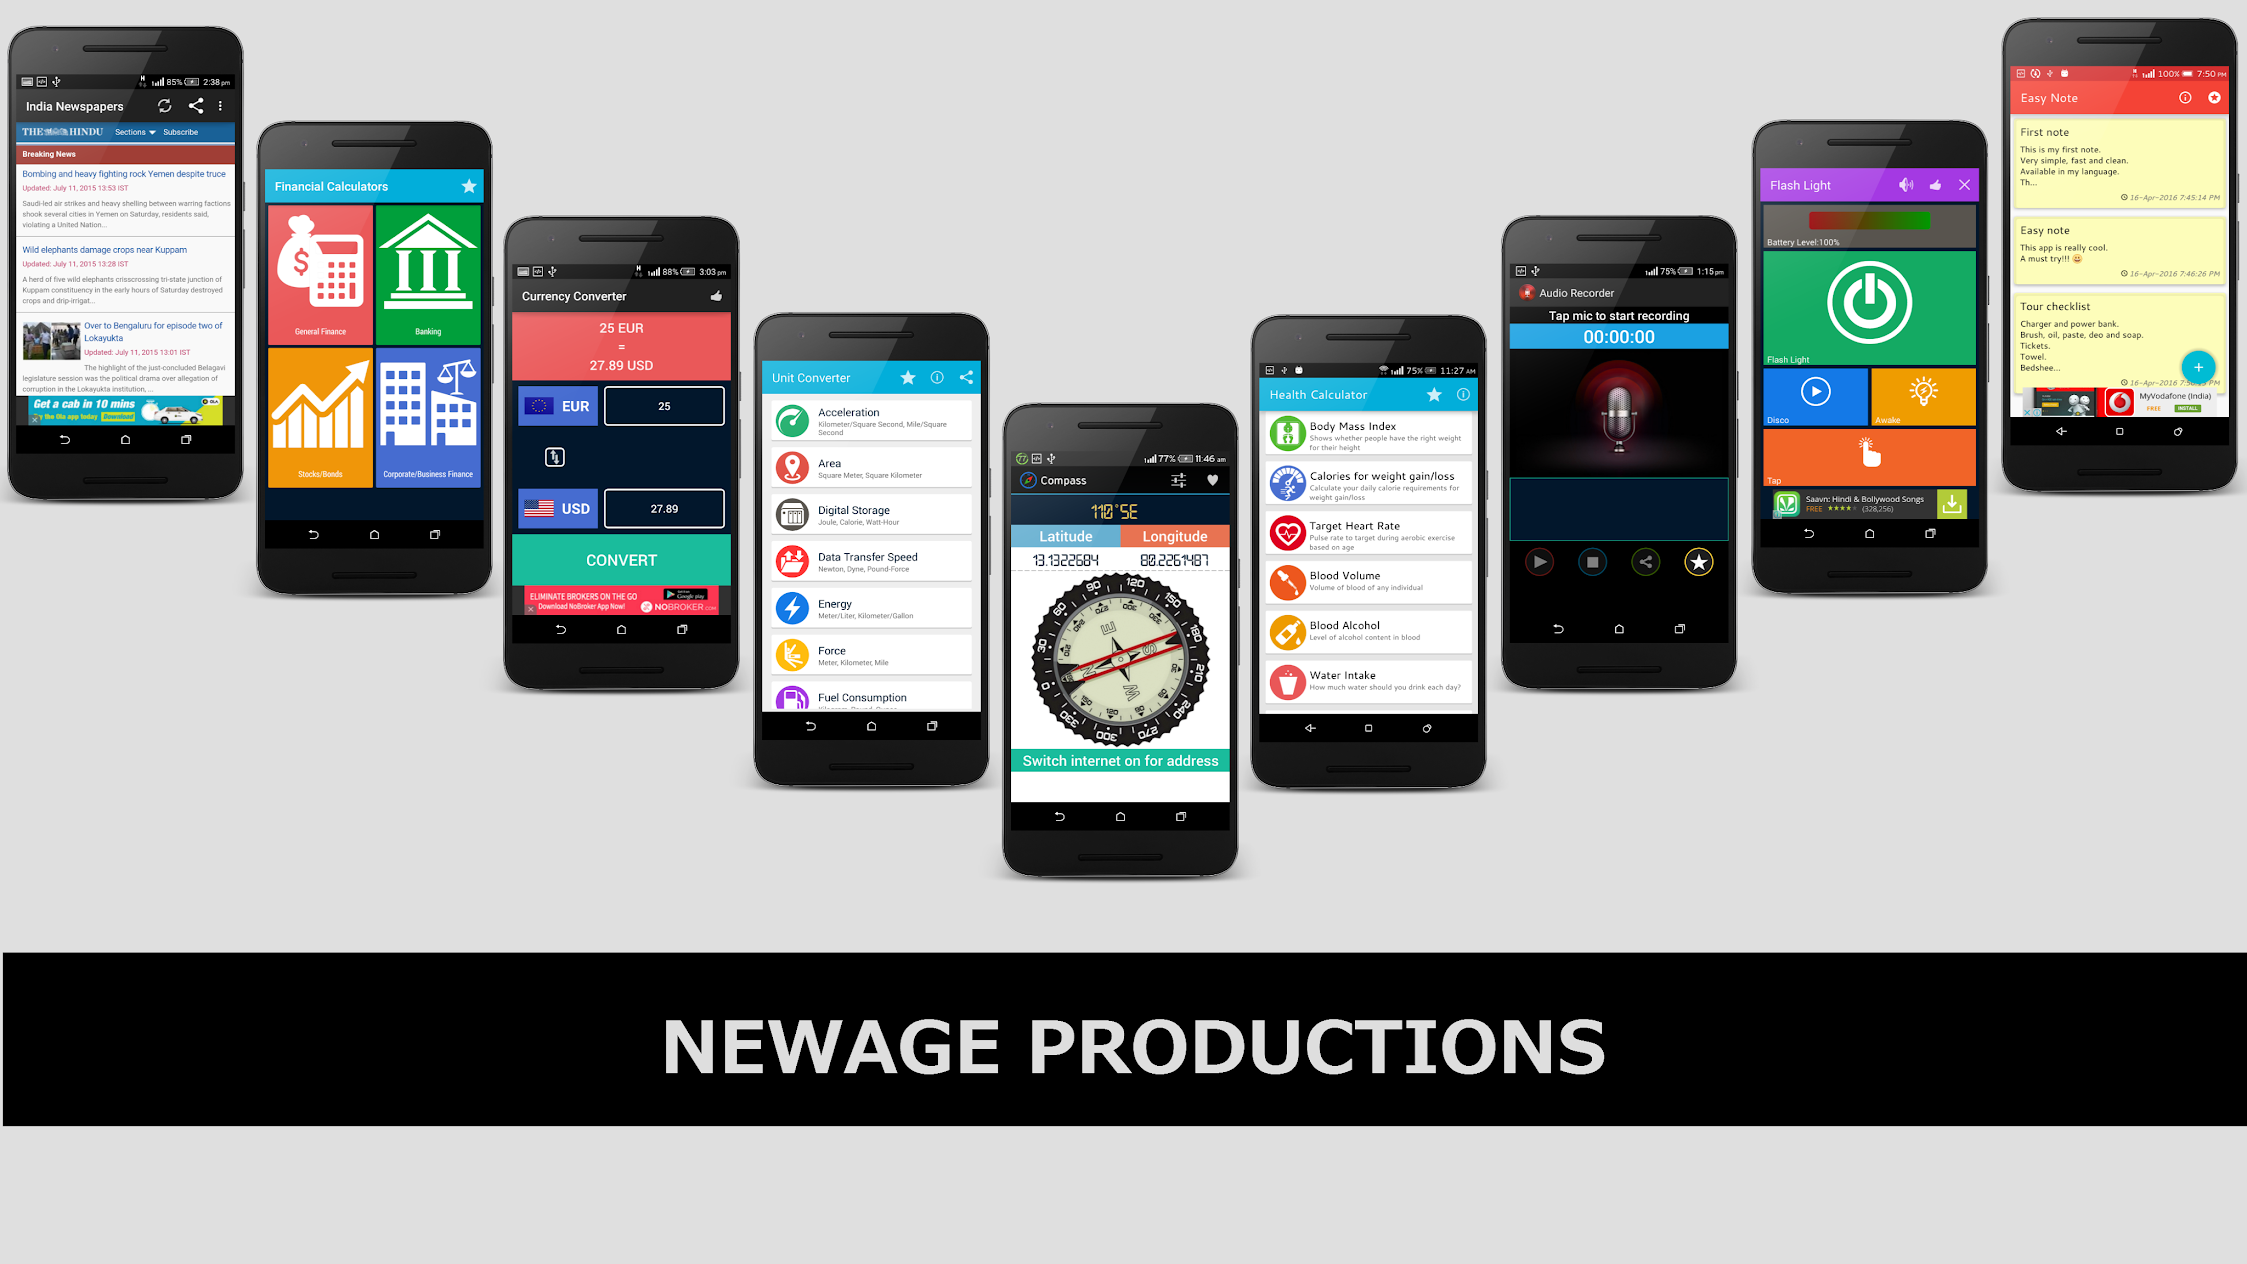 Newage Productions